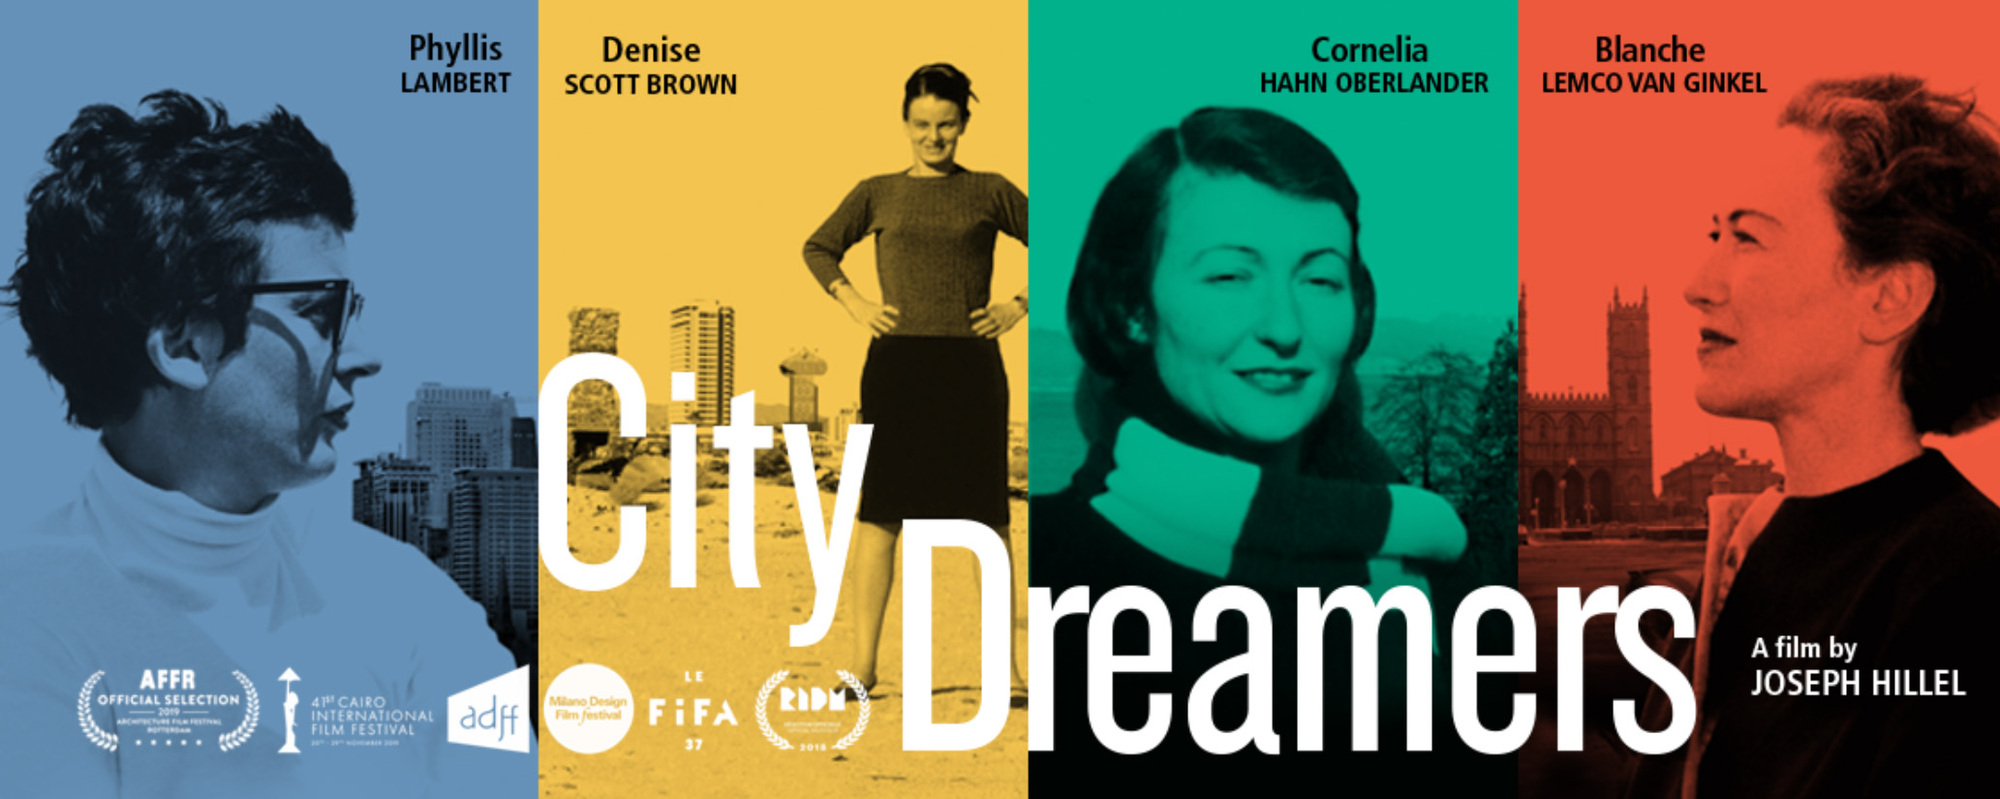 City_Dreamers__CIFF_251119-1